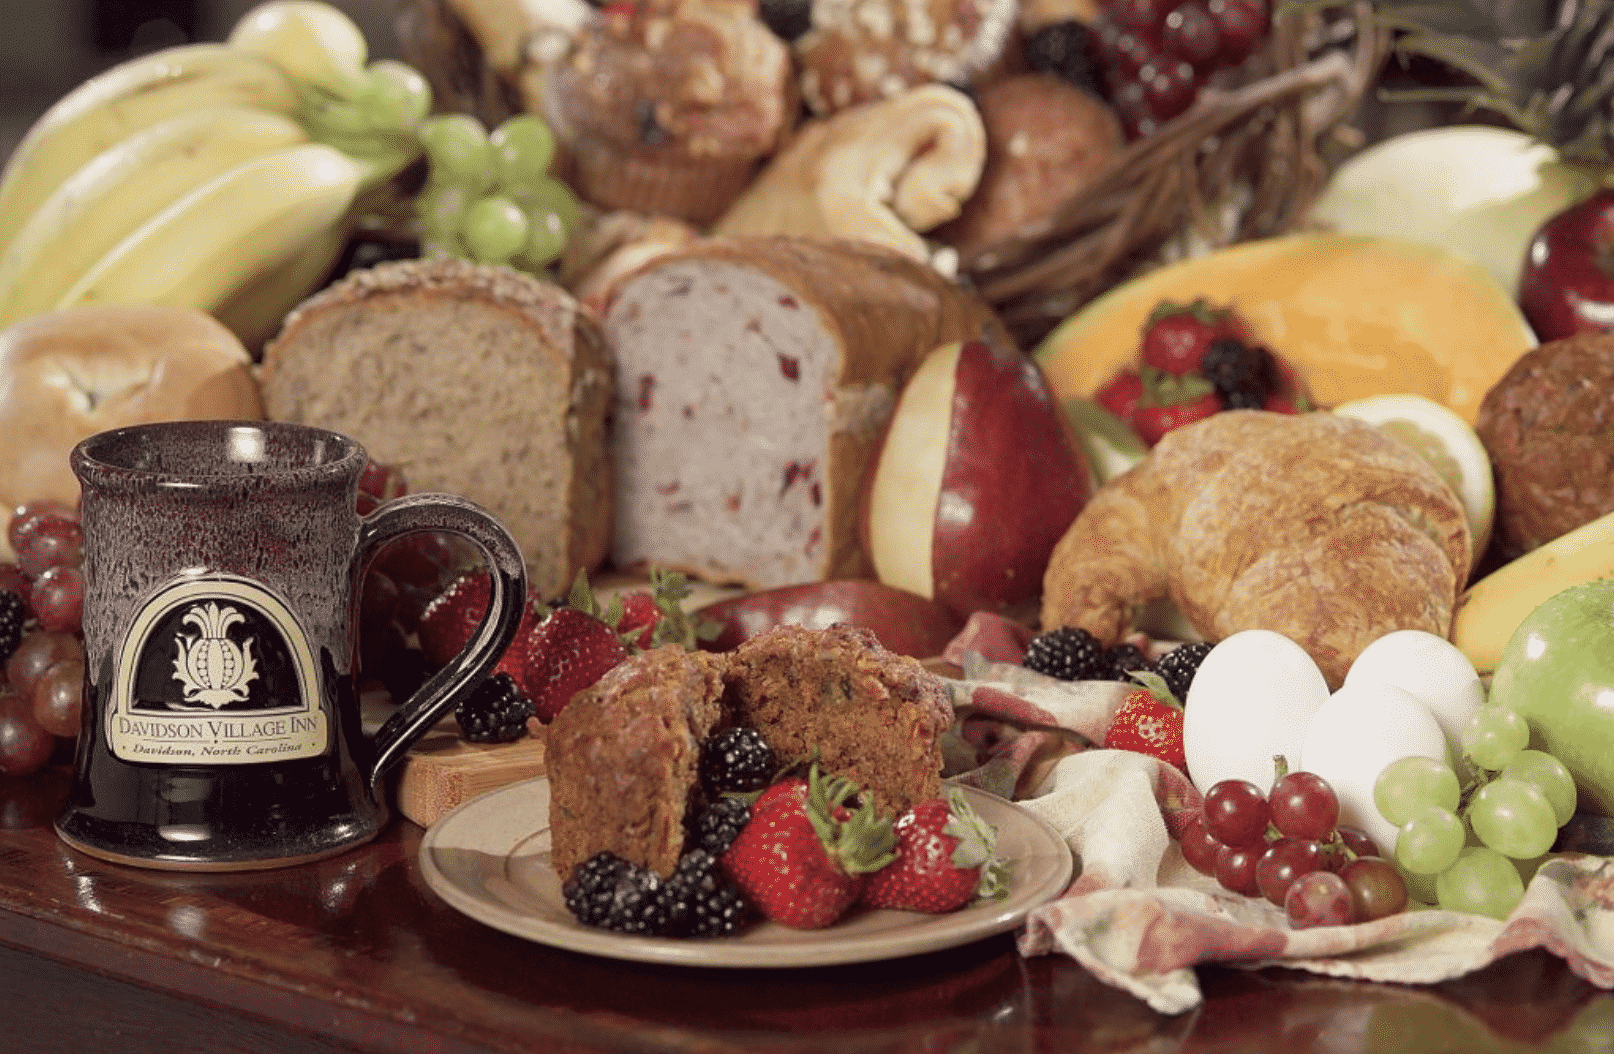 Table topped with a colorful array of breads and fruit for breakfast